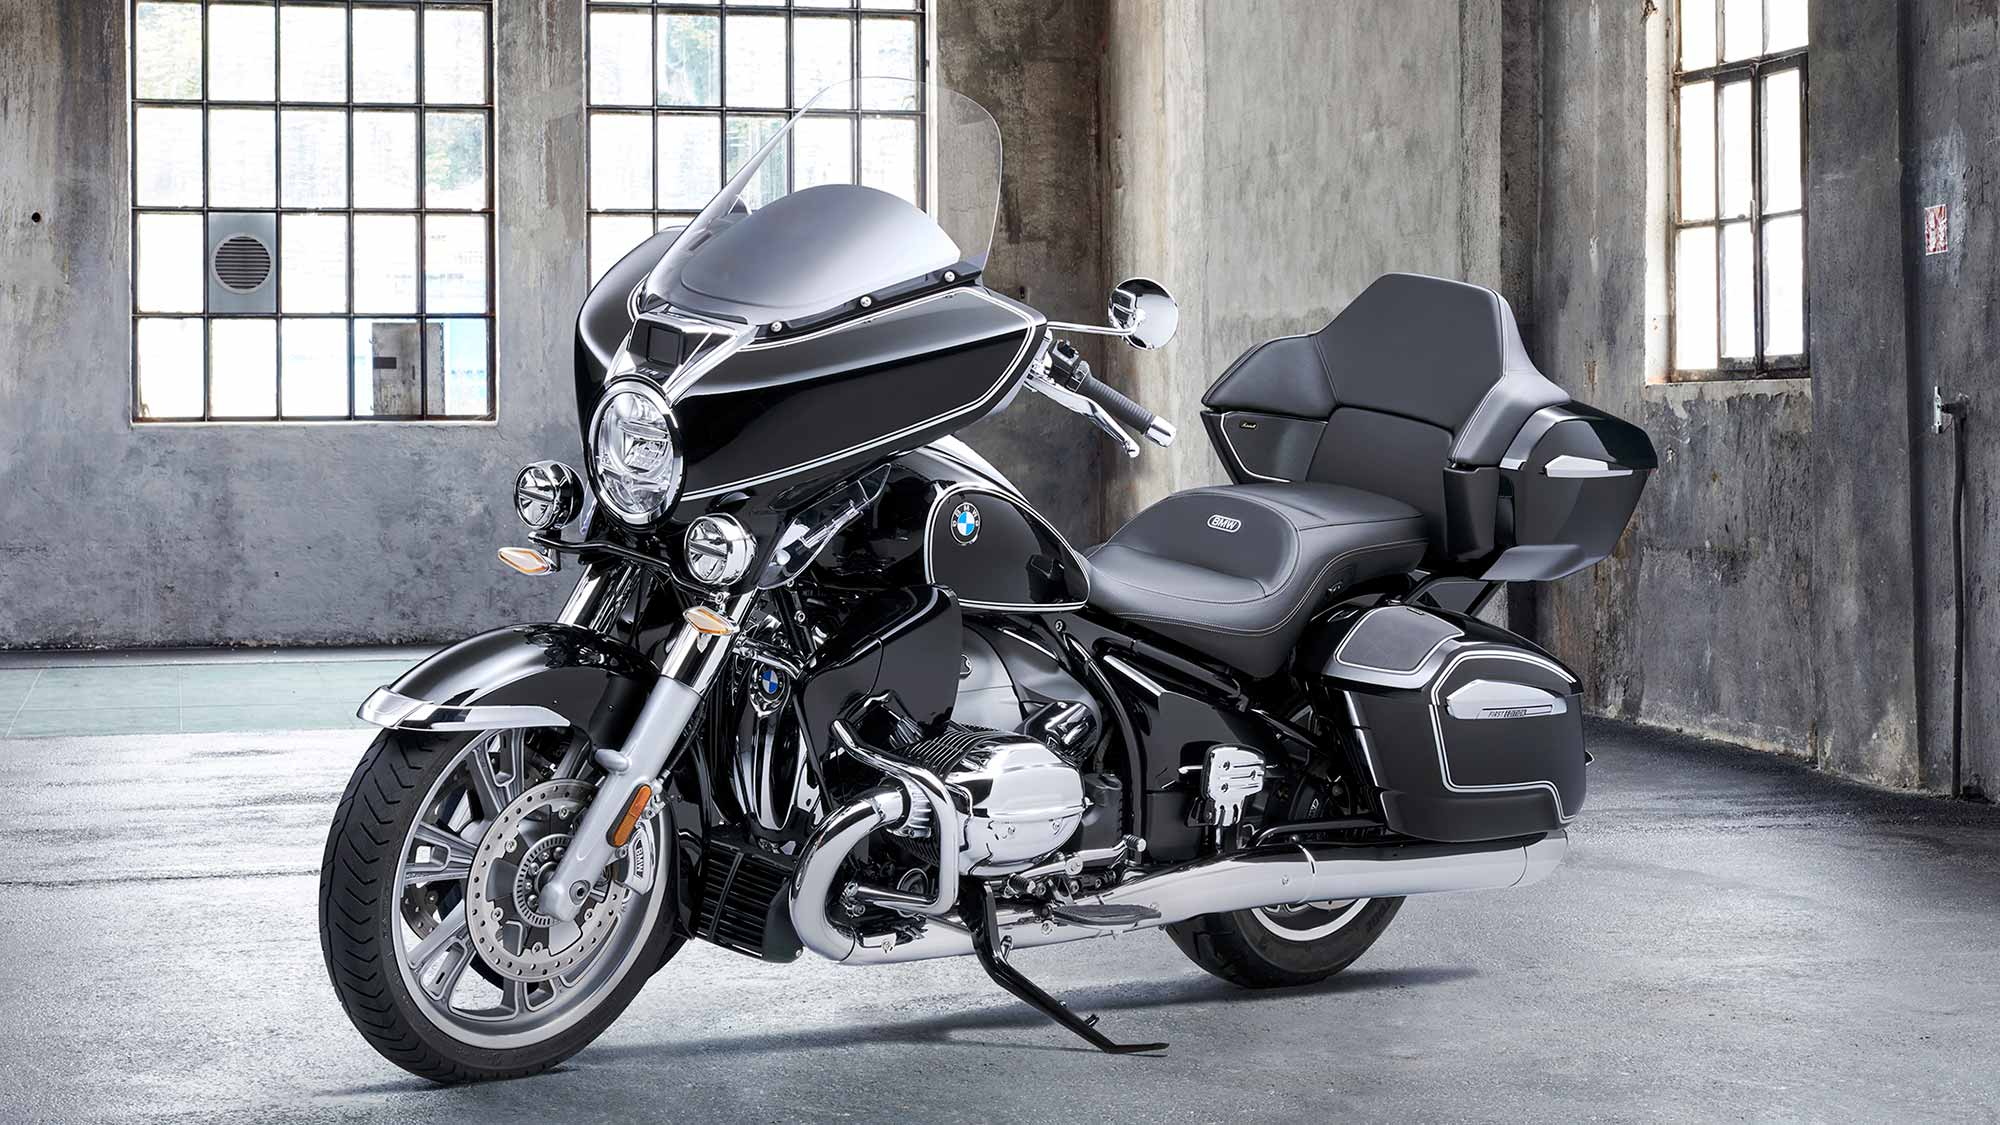 2022 BMW R 18 Transcontinental Motorcycle